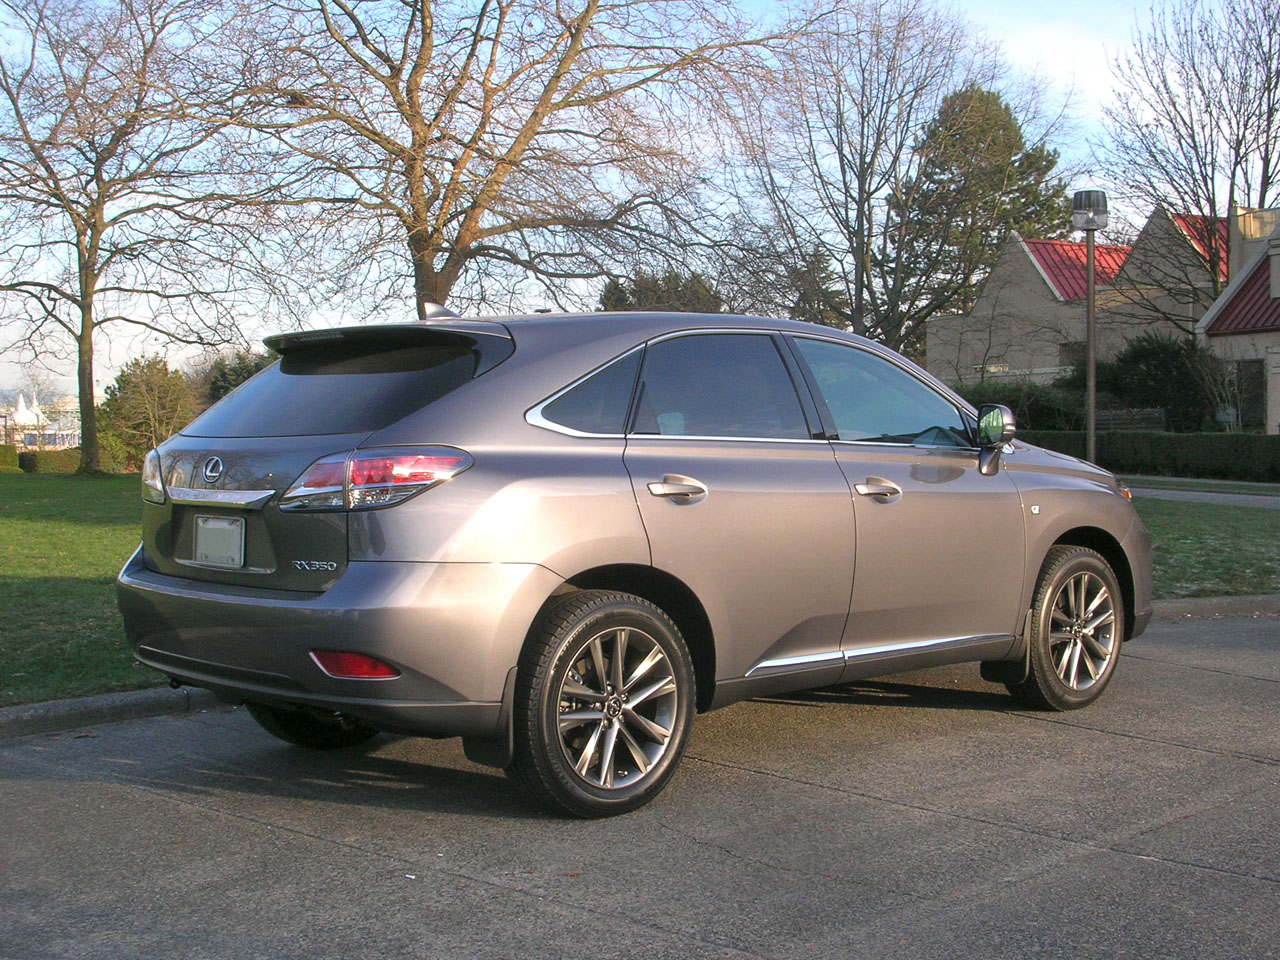 2014 lexus rx 350 f sport road test review carcostcanada. Black Bedroom Furniture Sets. Home Design Ideas